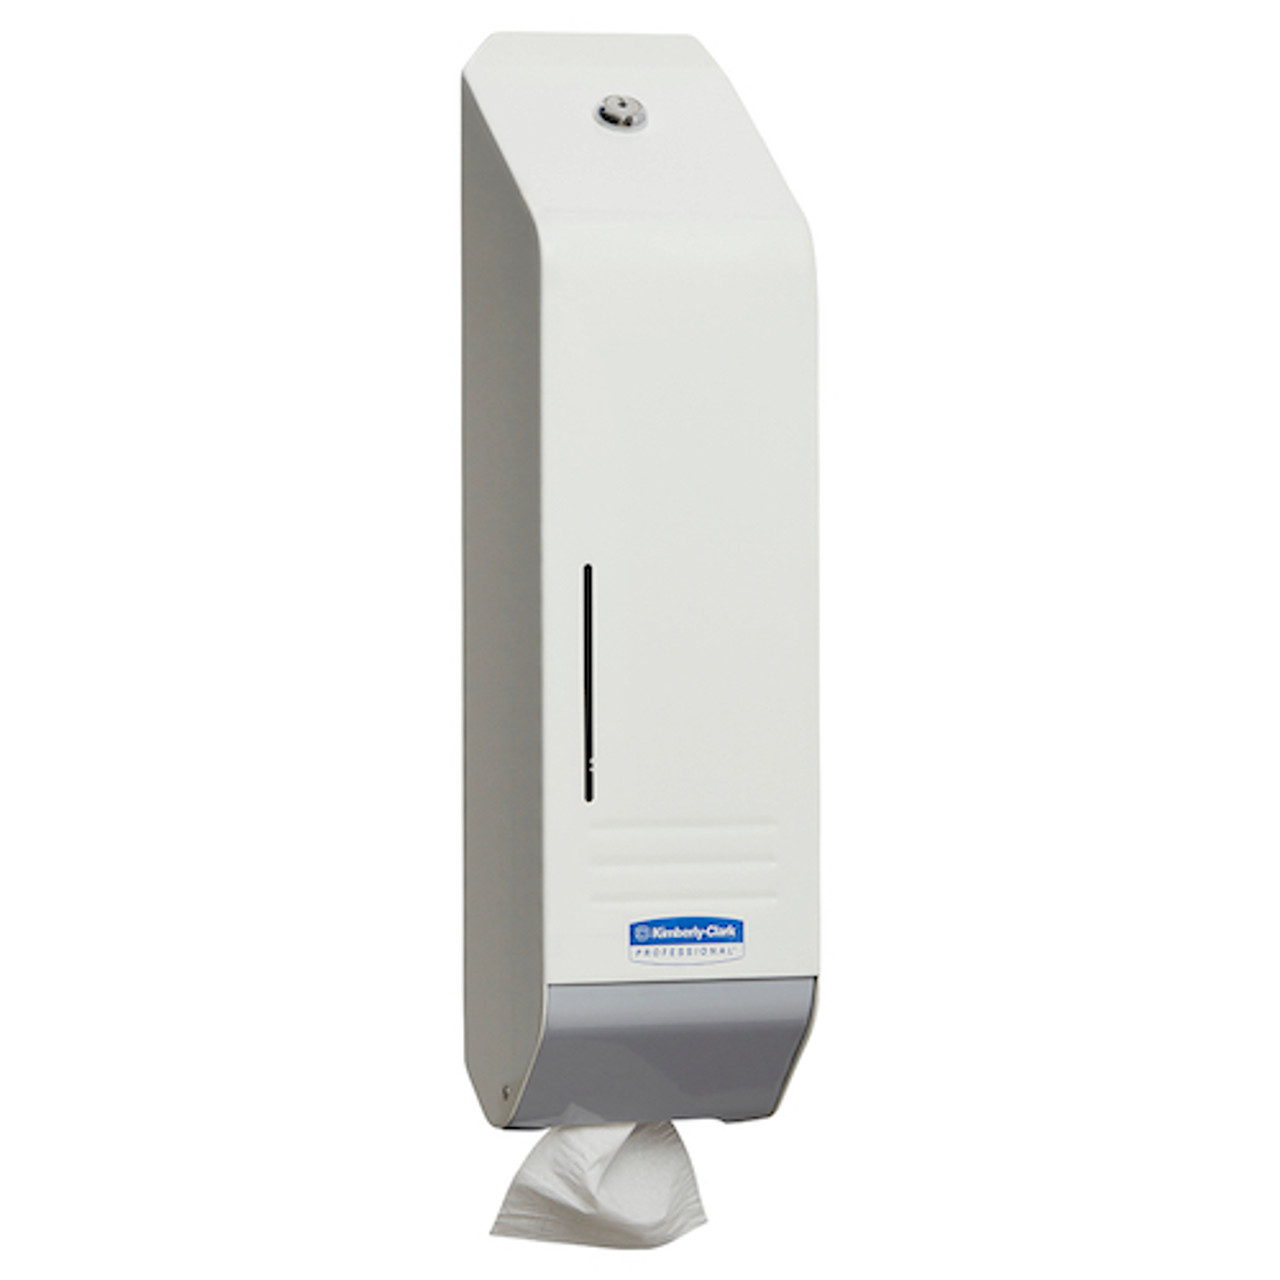 Kimberly Clark Metal Single Sheet Toilet Tissue Dispenser (4404)